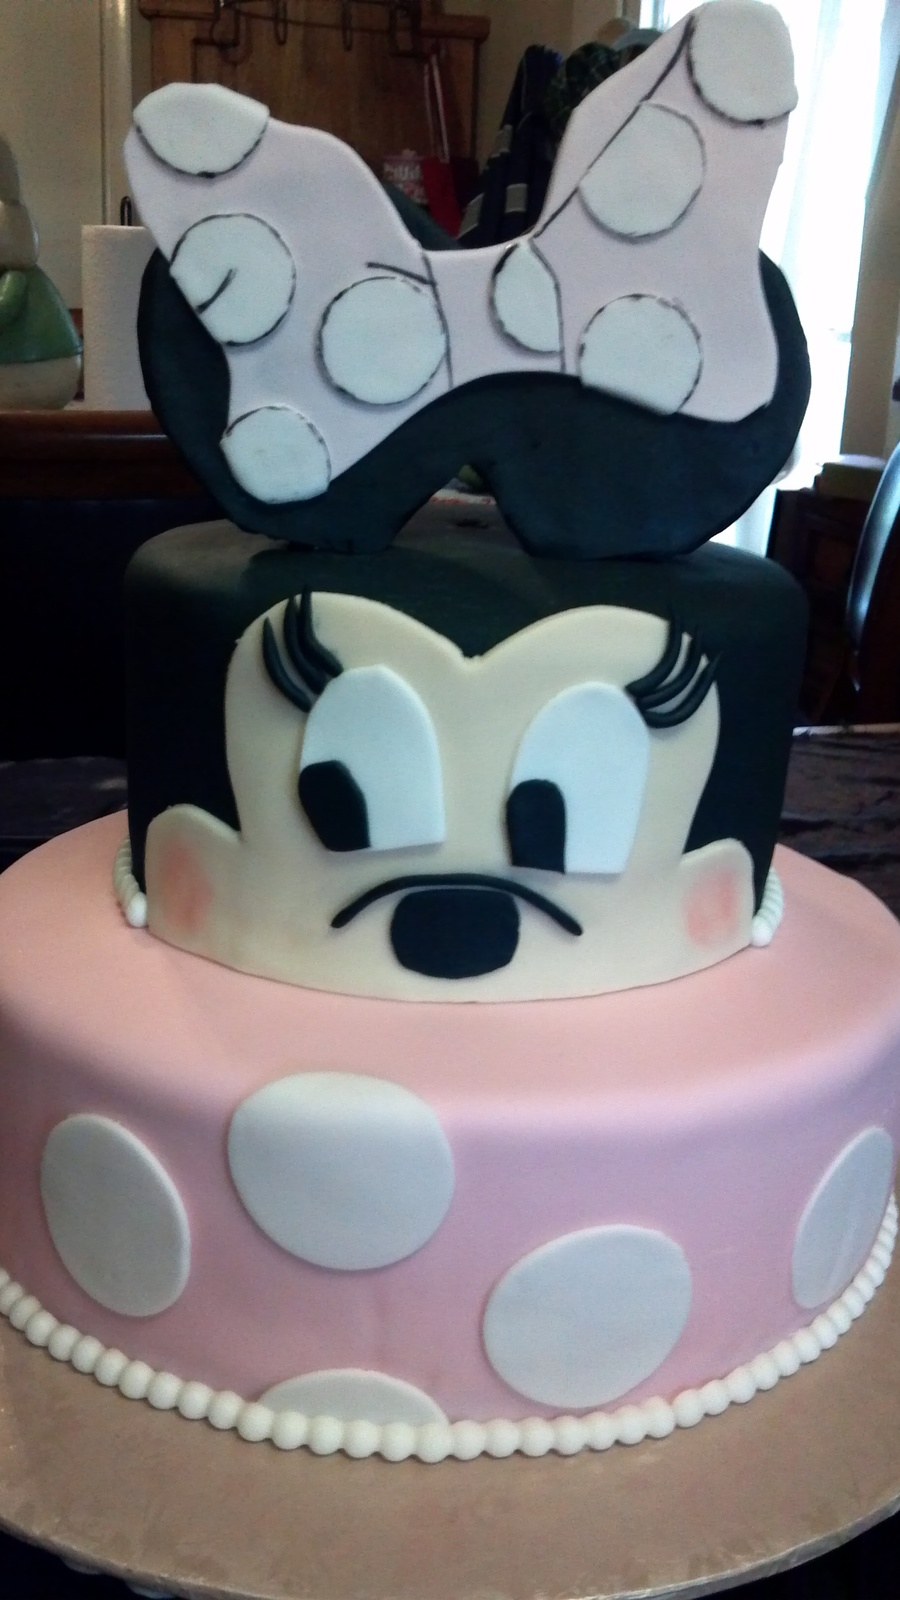 Baby Girl Birthday Cake Minnie Mouse Birthday Cake For Ba Girl Turning 1 Cakecentral